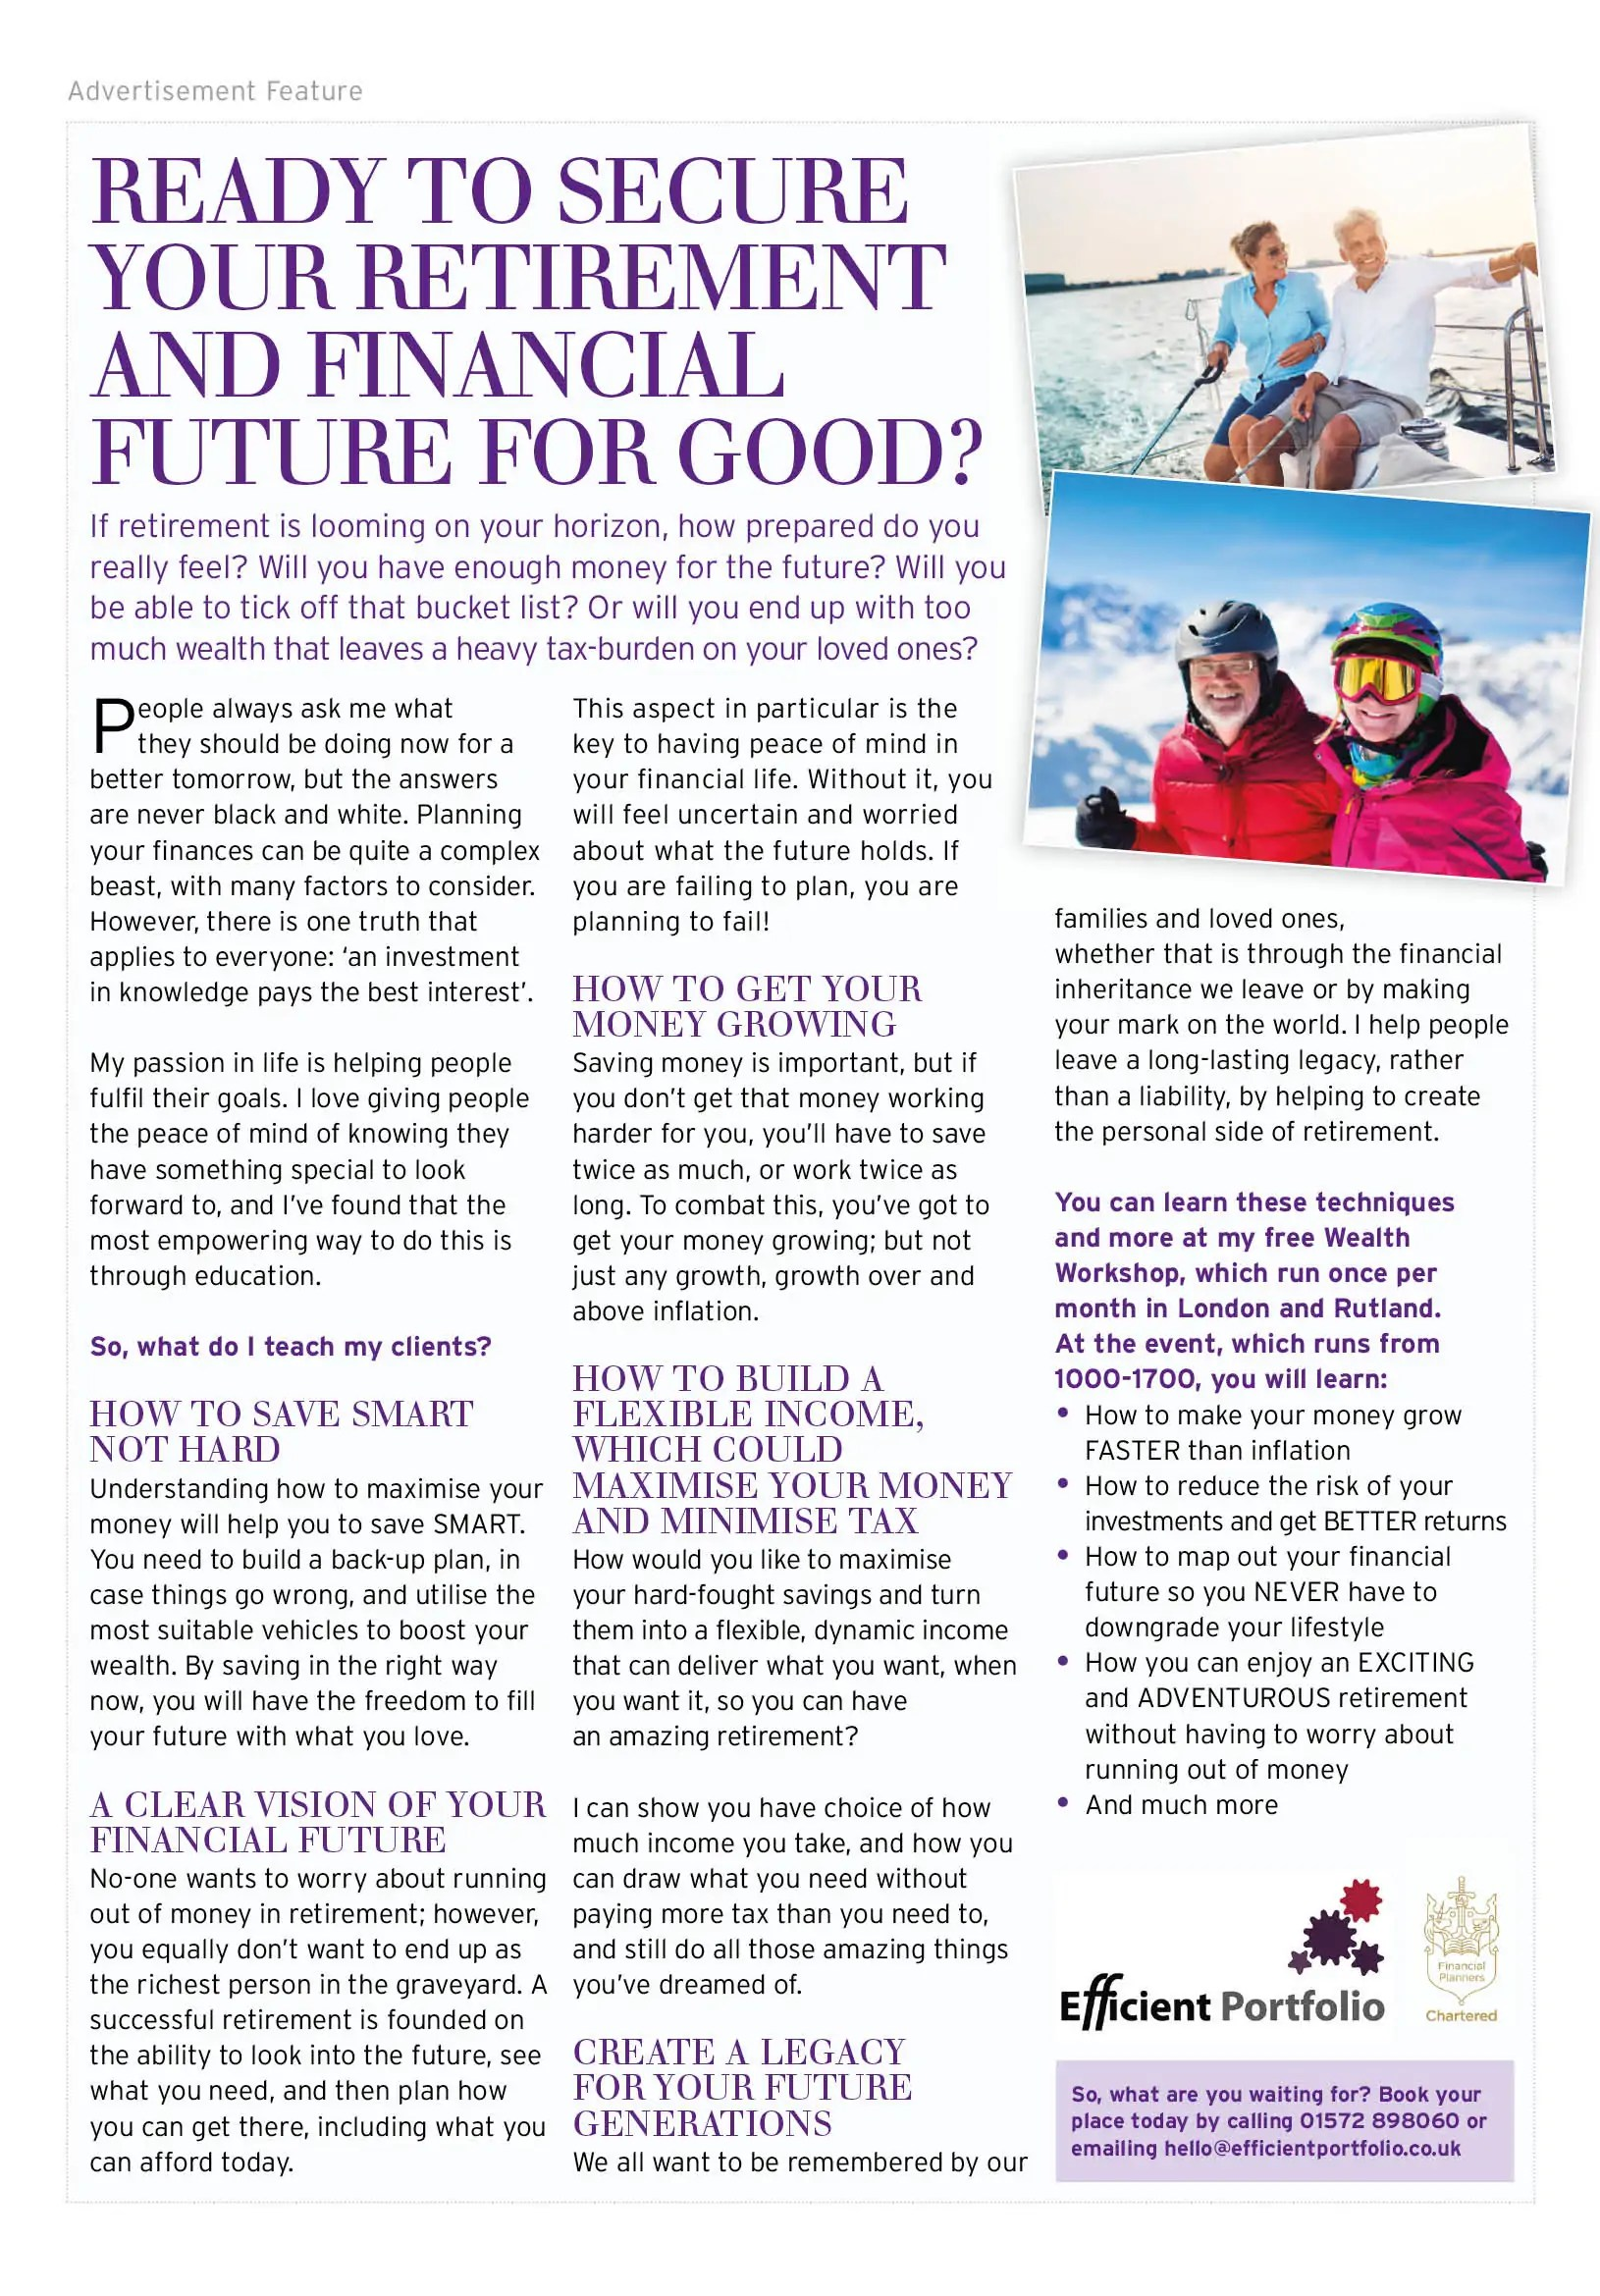 Rutland Living Efficient Portfolio Article March